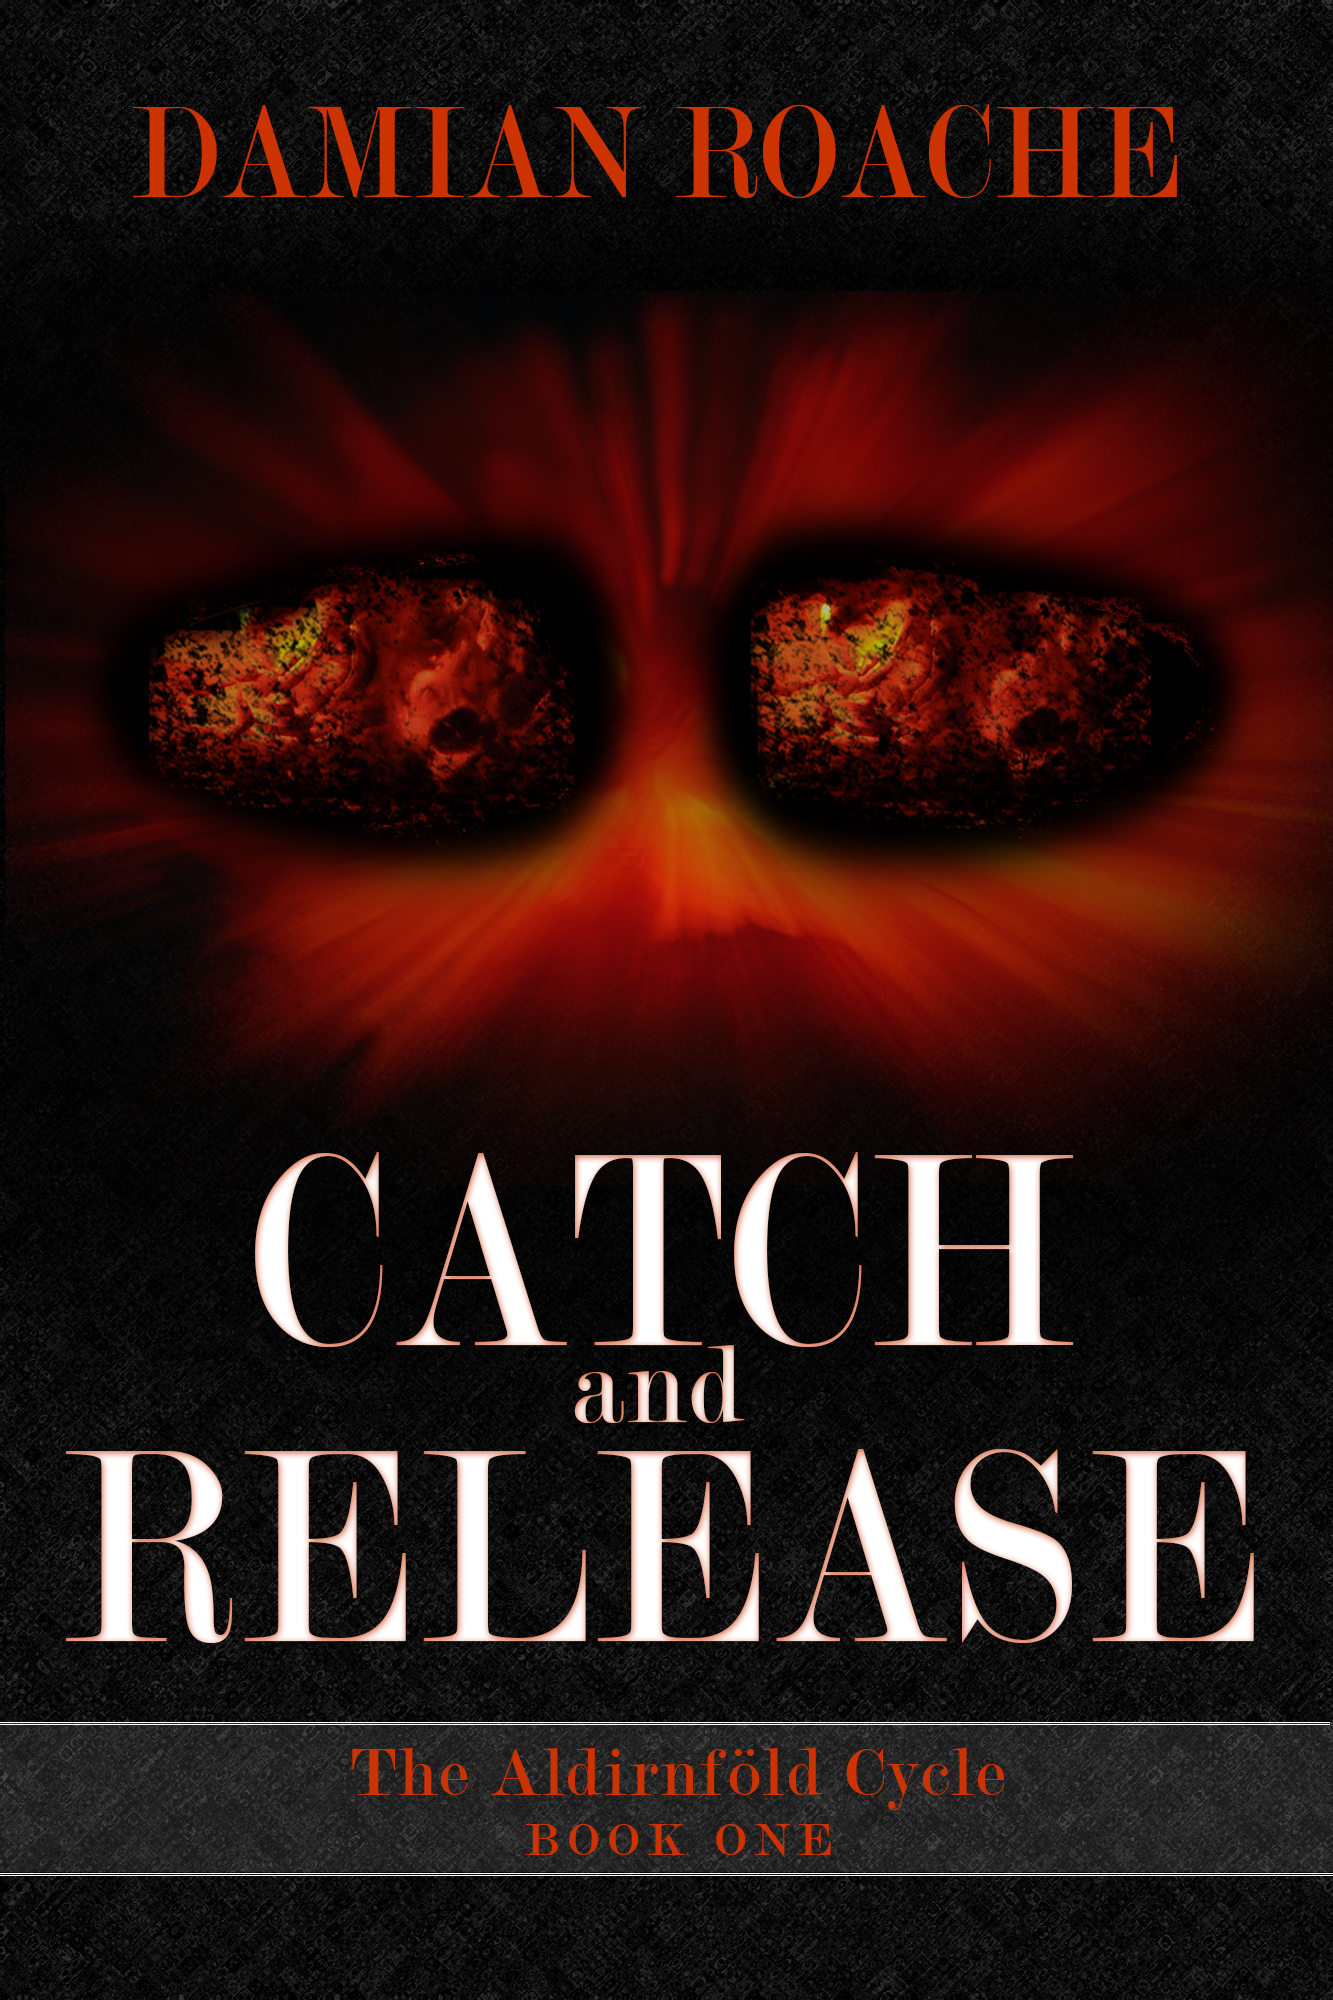 Catch and Release - Damian Roache